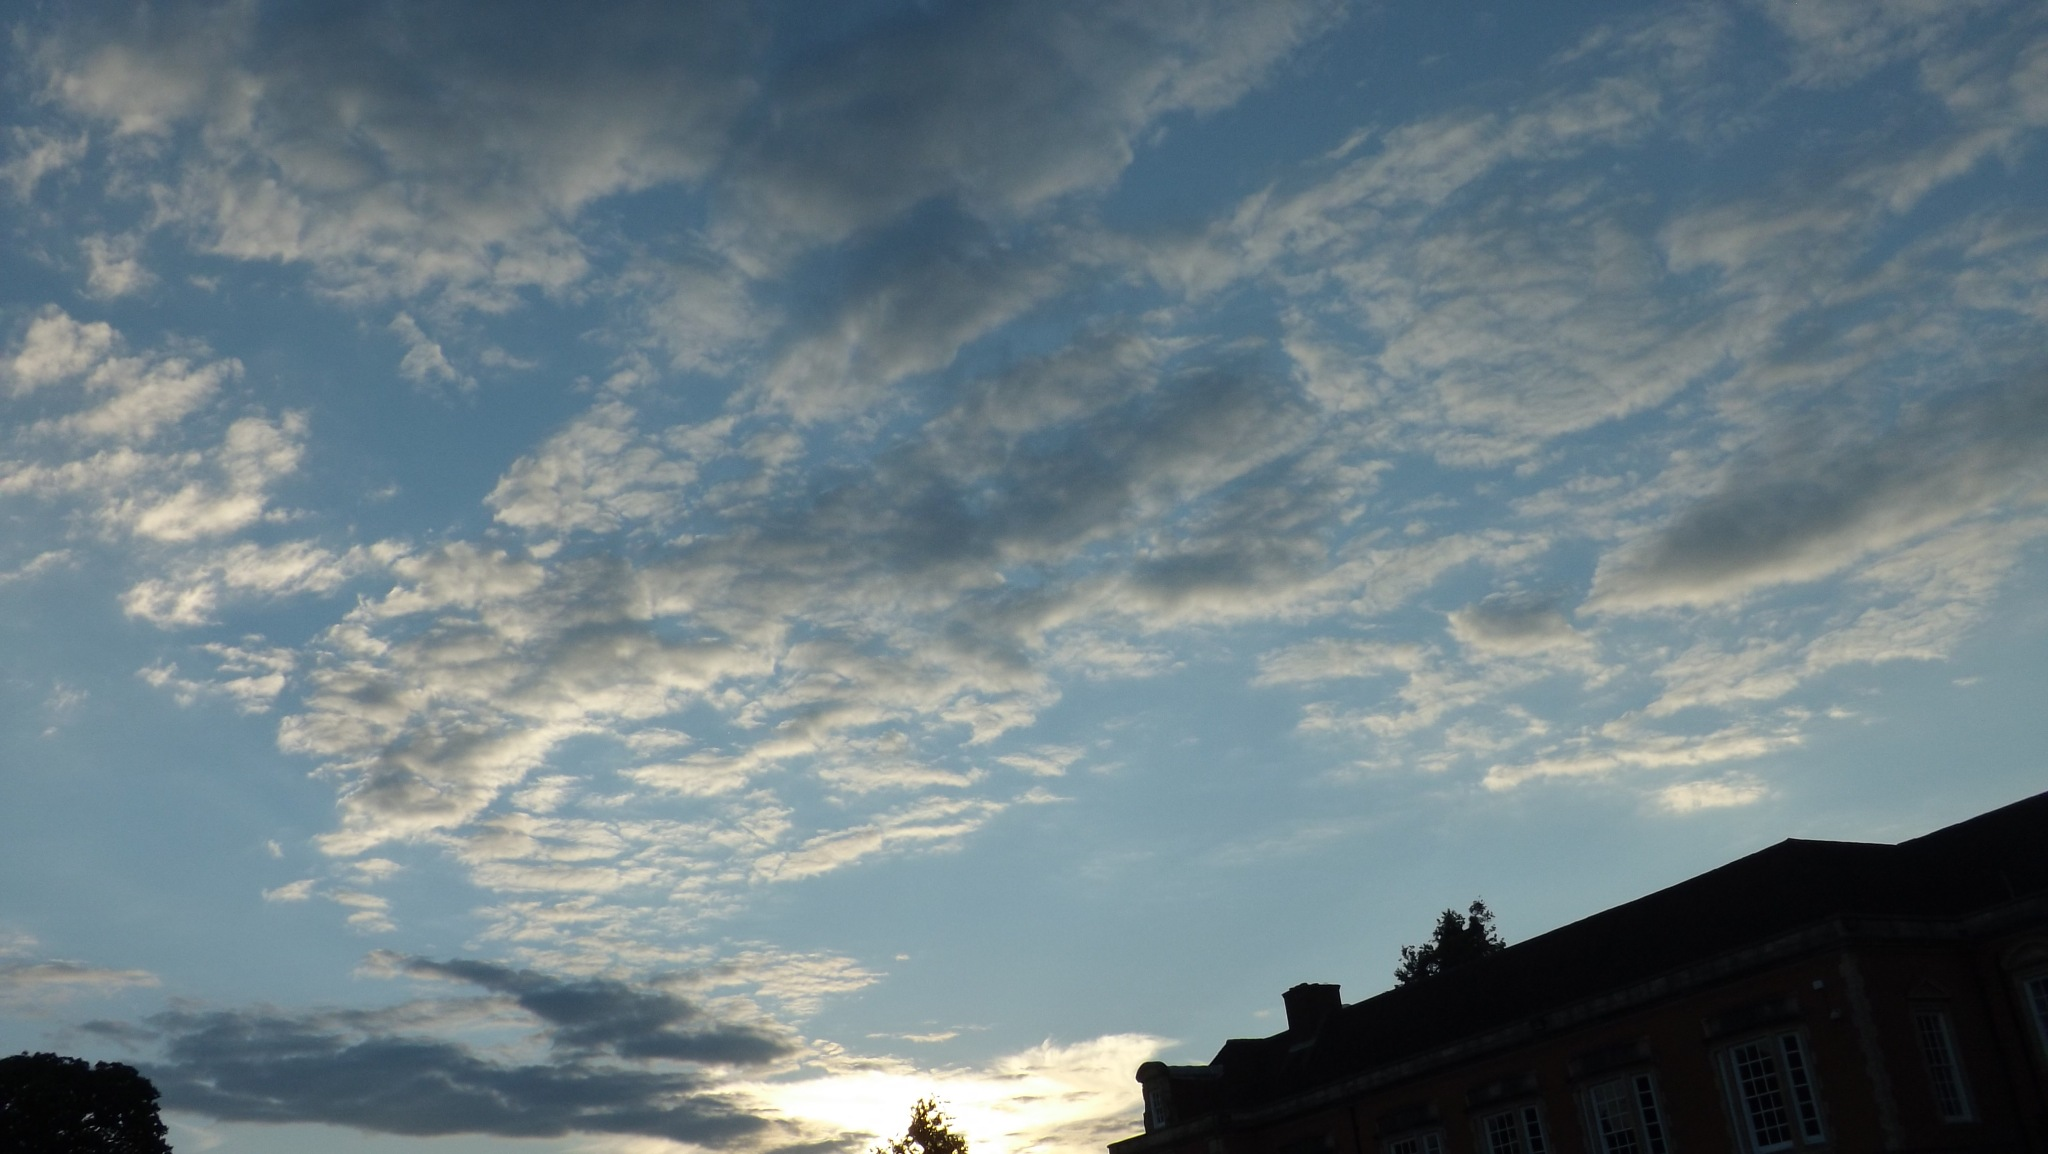 early evening clouds over buildings by beachbaby58